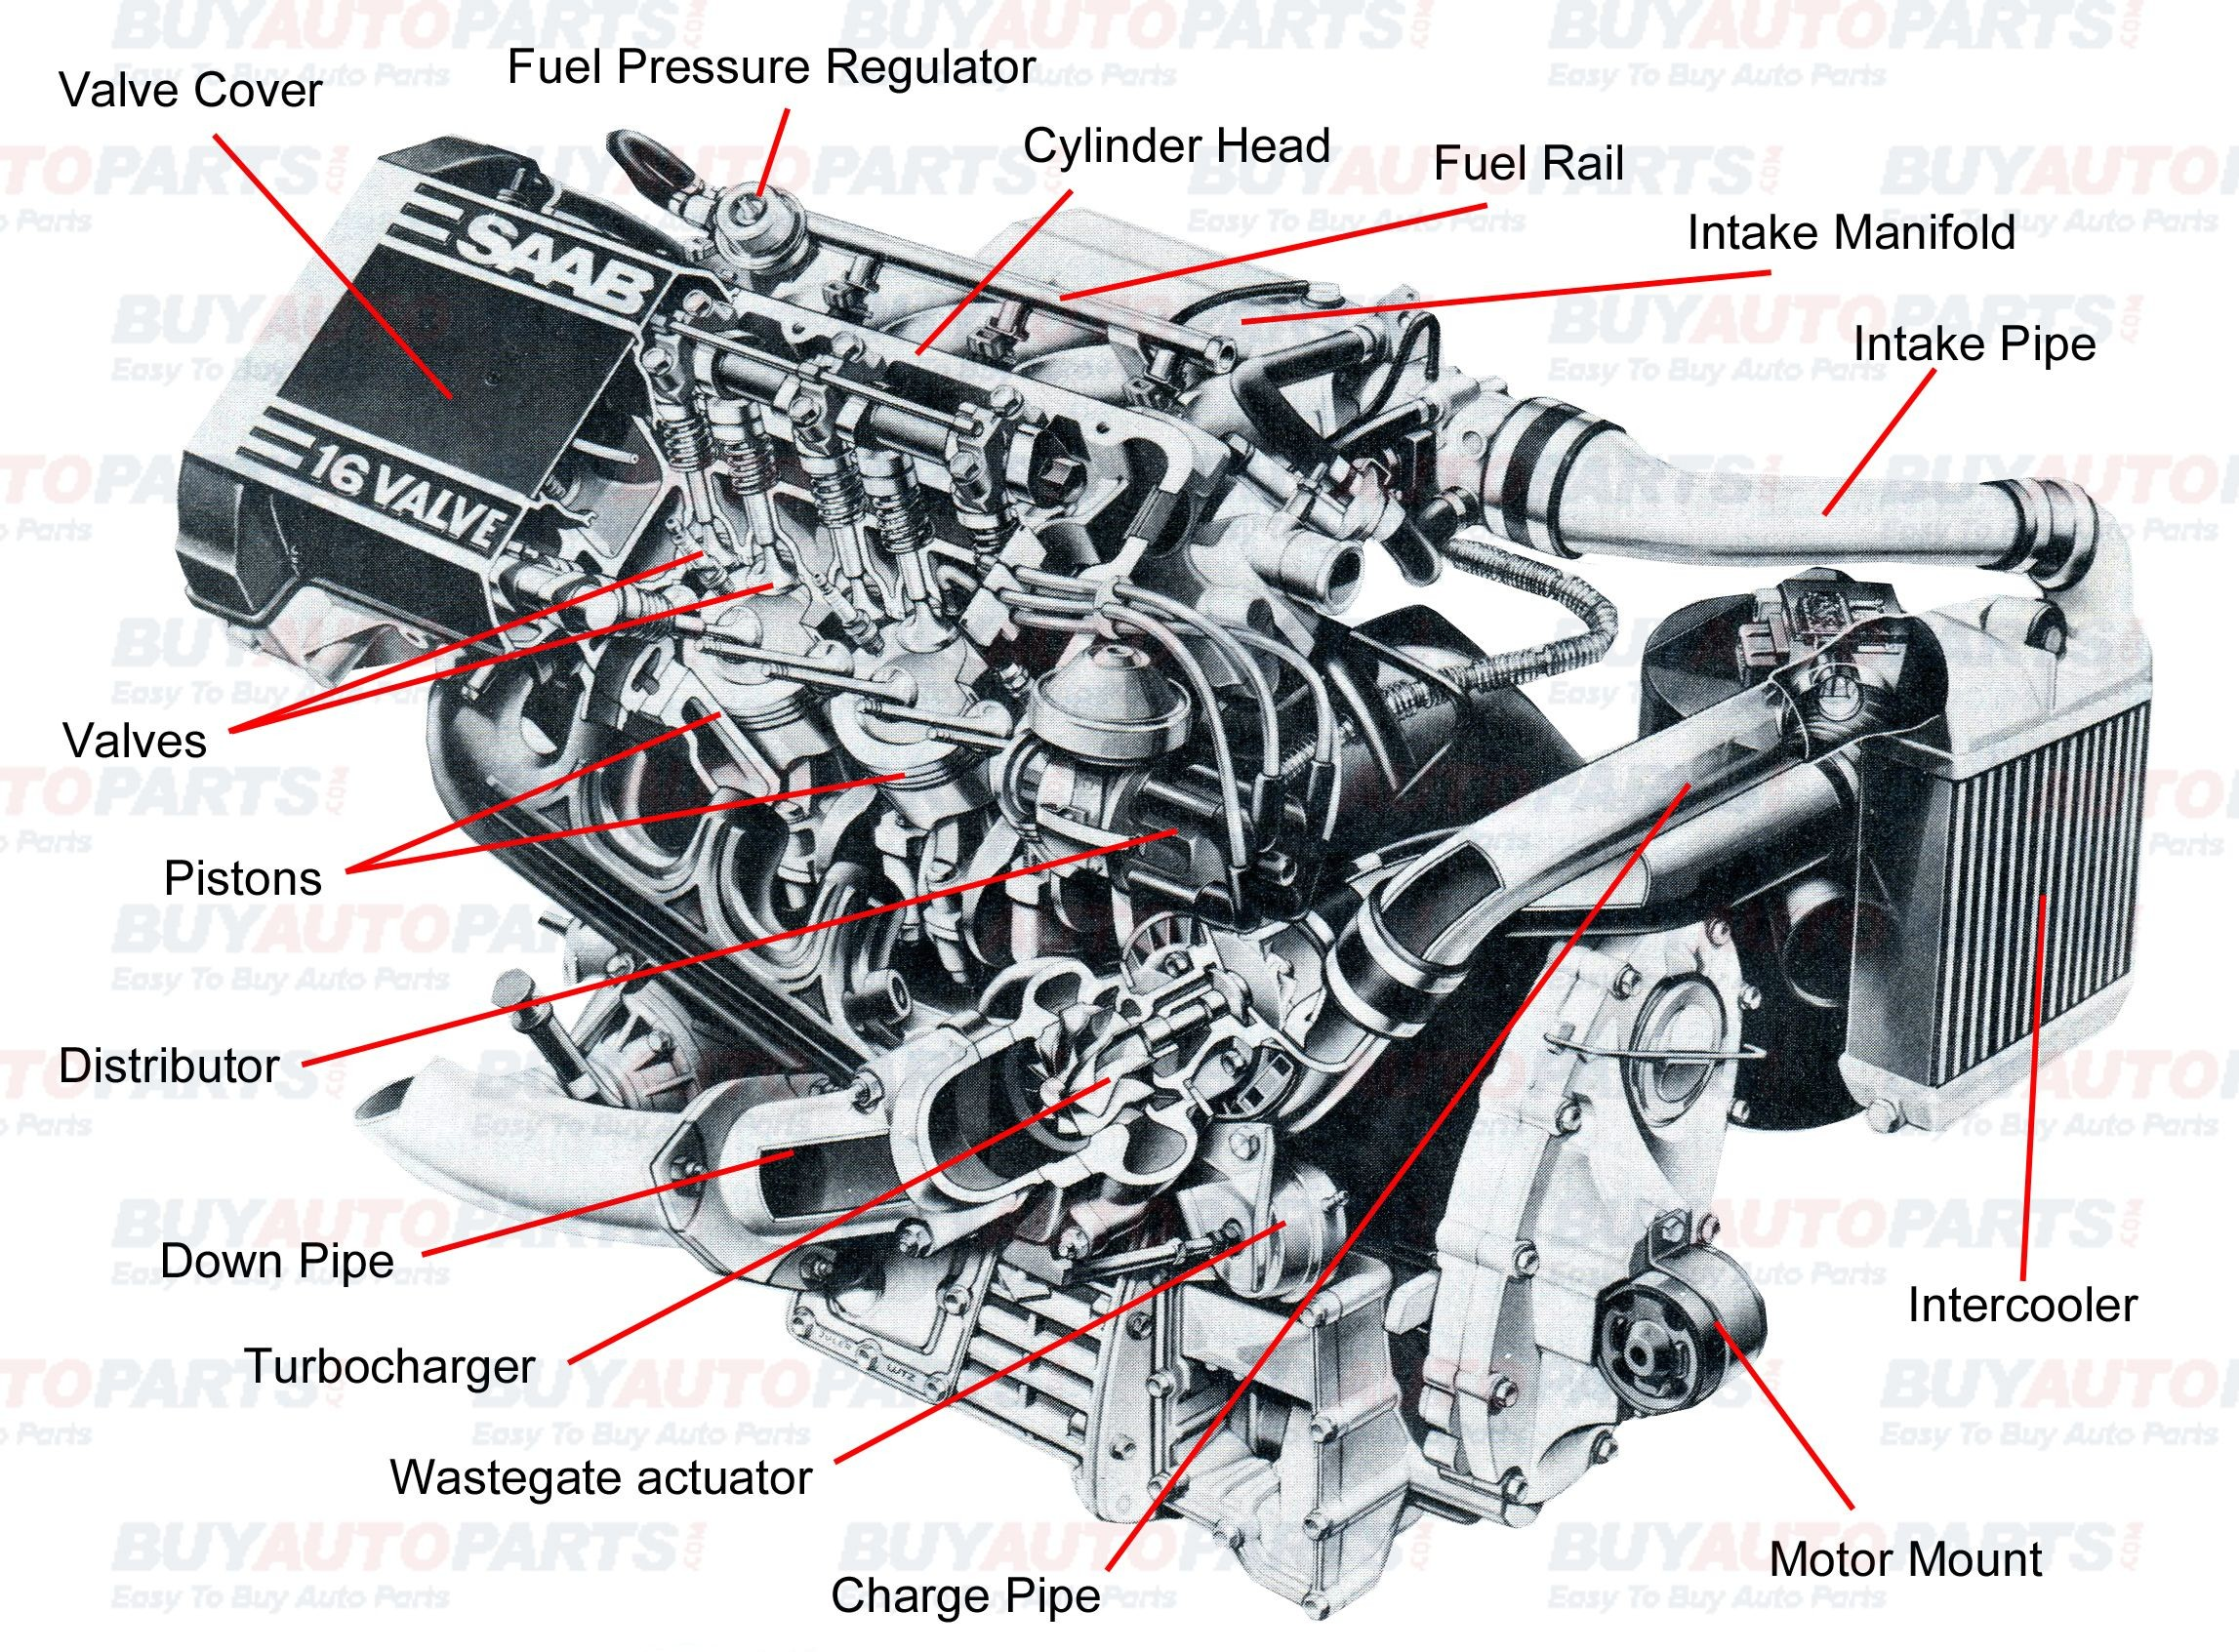 Diagram for Car Engine All Internal Bustion Engines Have the Same Basic Ponents the Of Diagram for Car Engine